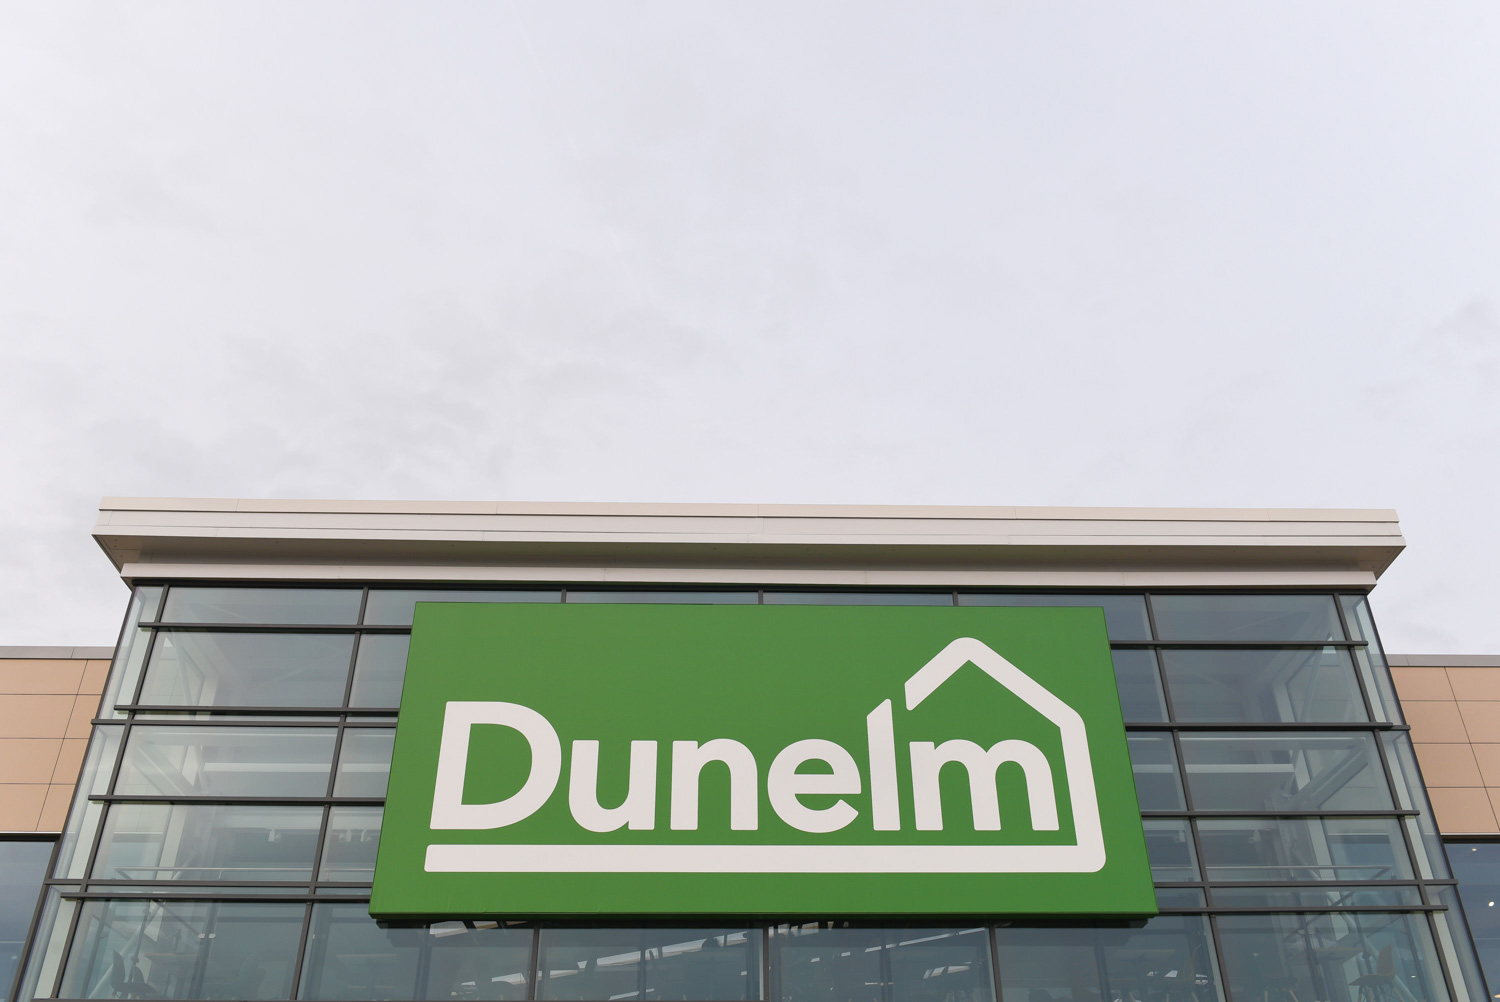 Dunelm_Warrington_1_B&W.jpg